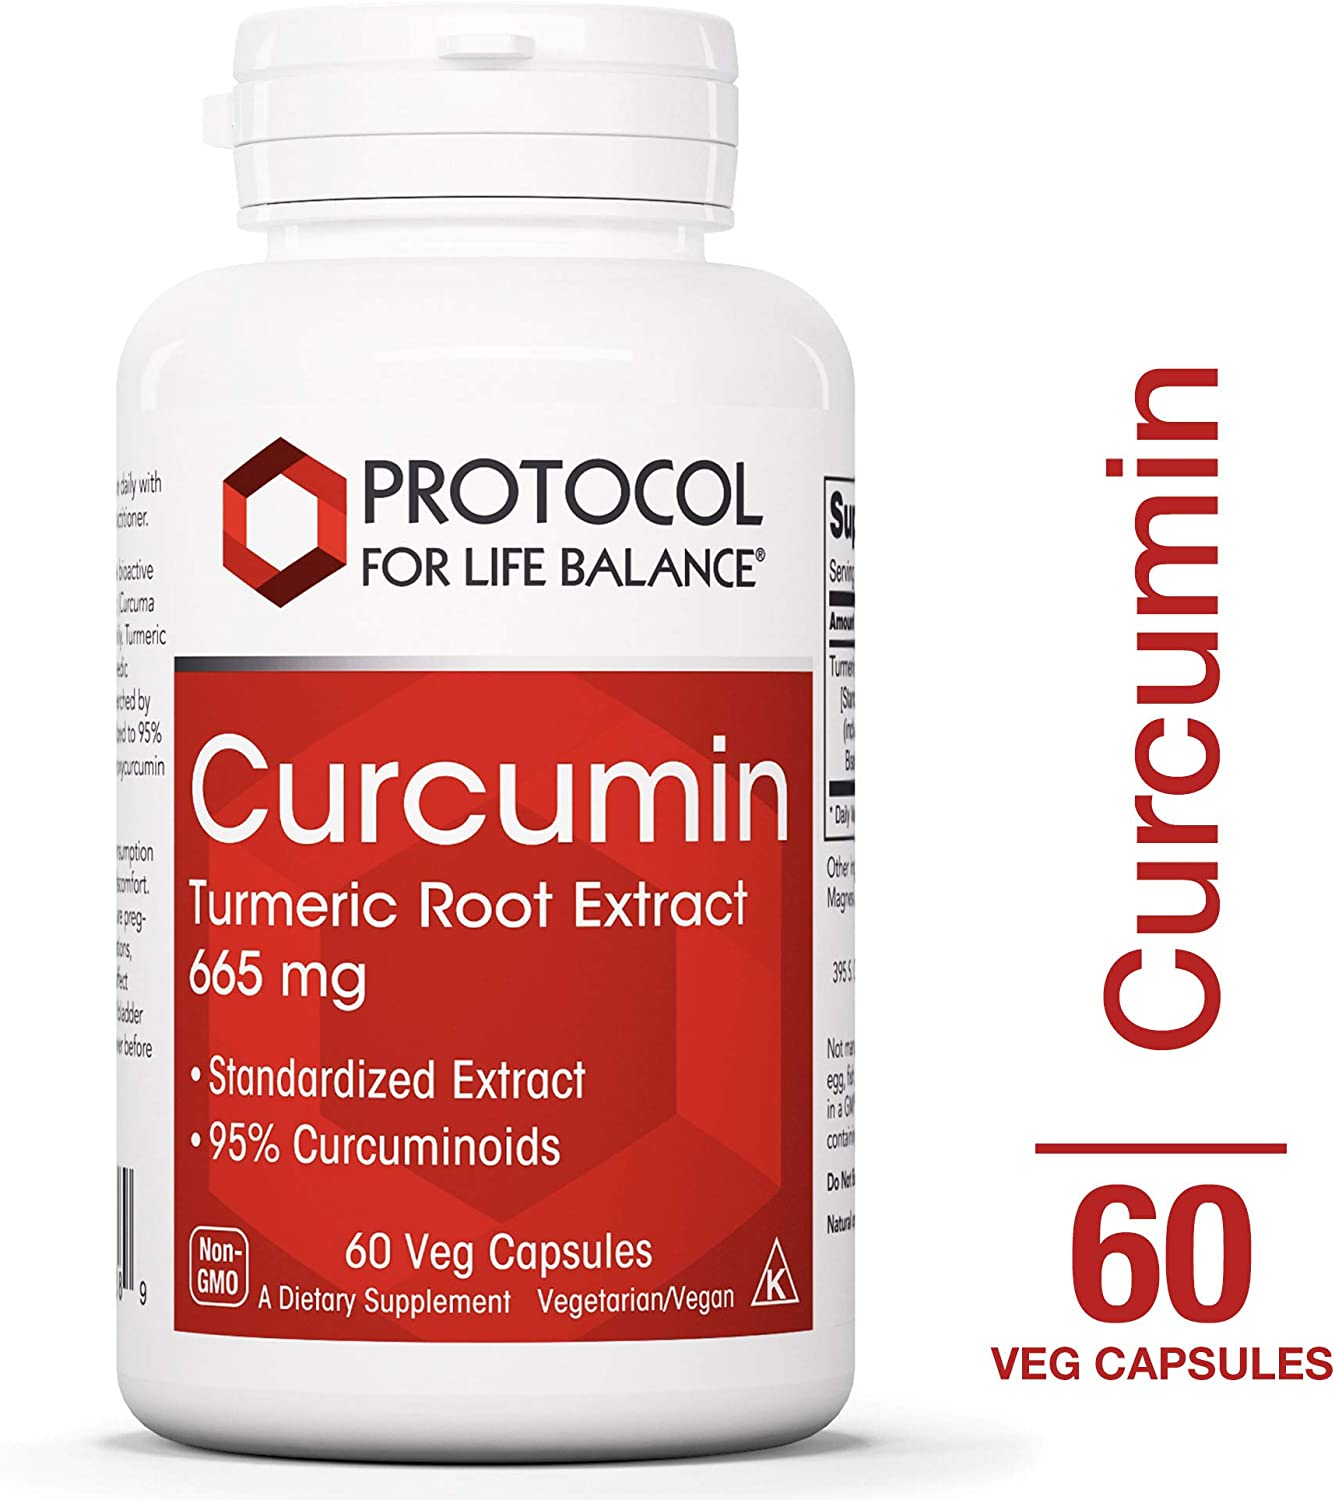 Protocol For Life Balance – Curcumin – Turmeric Root Extract 665 mg – Reduces Joint Inflammation and helps Maintain Normal Cardiovascular Health – 60 Veg Capsules